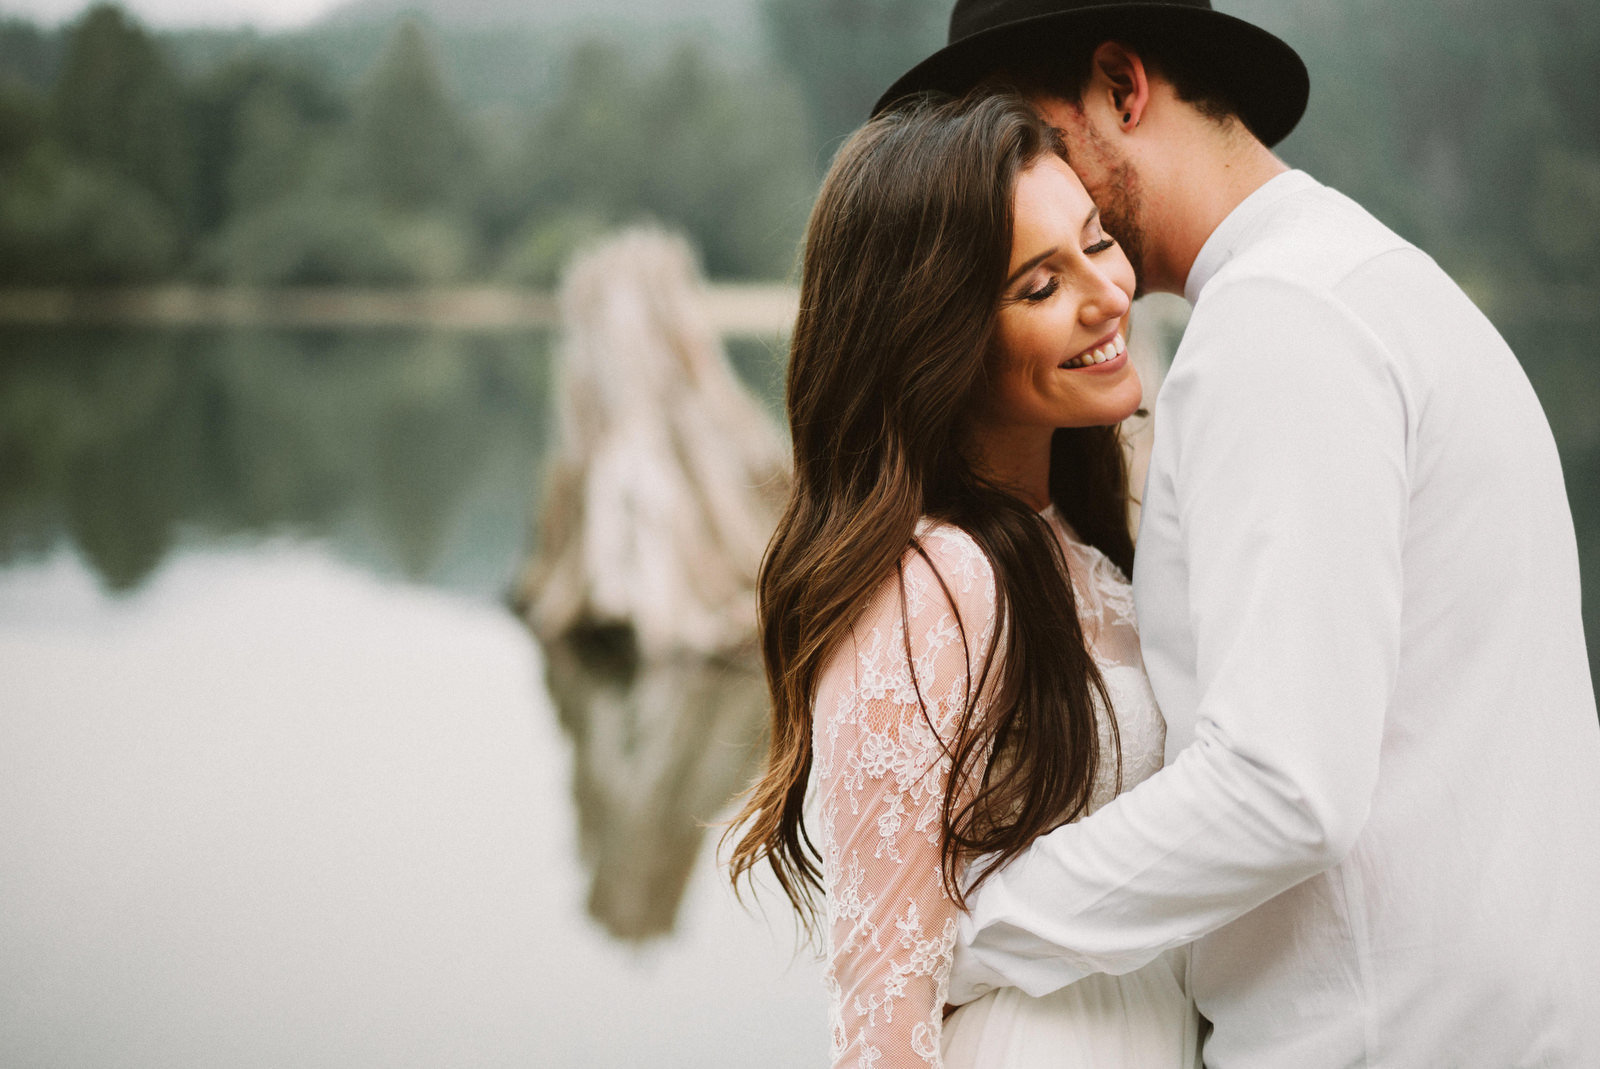 athena-and-camron-seattle-elopement-wedding-benj-haisch-rattlesnake-lake-christian-couple-goals81